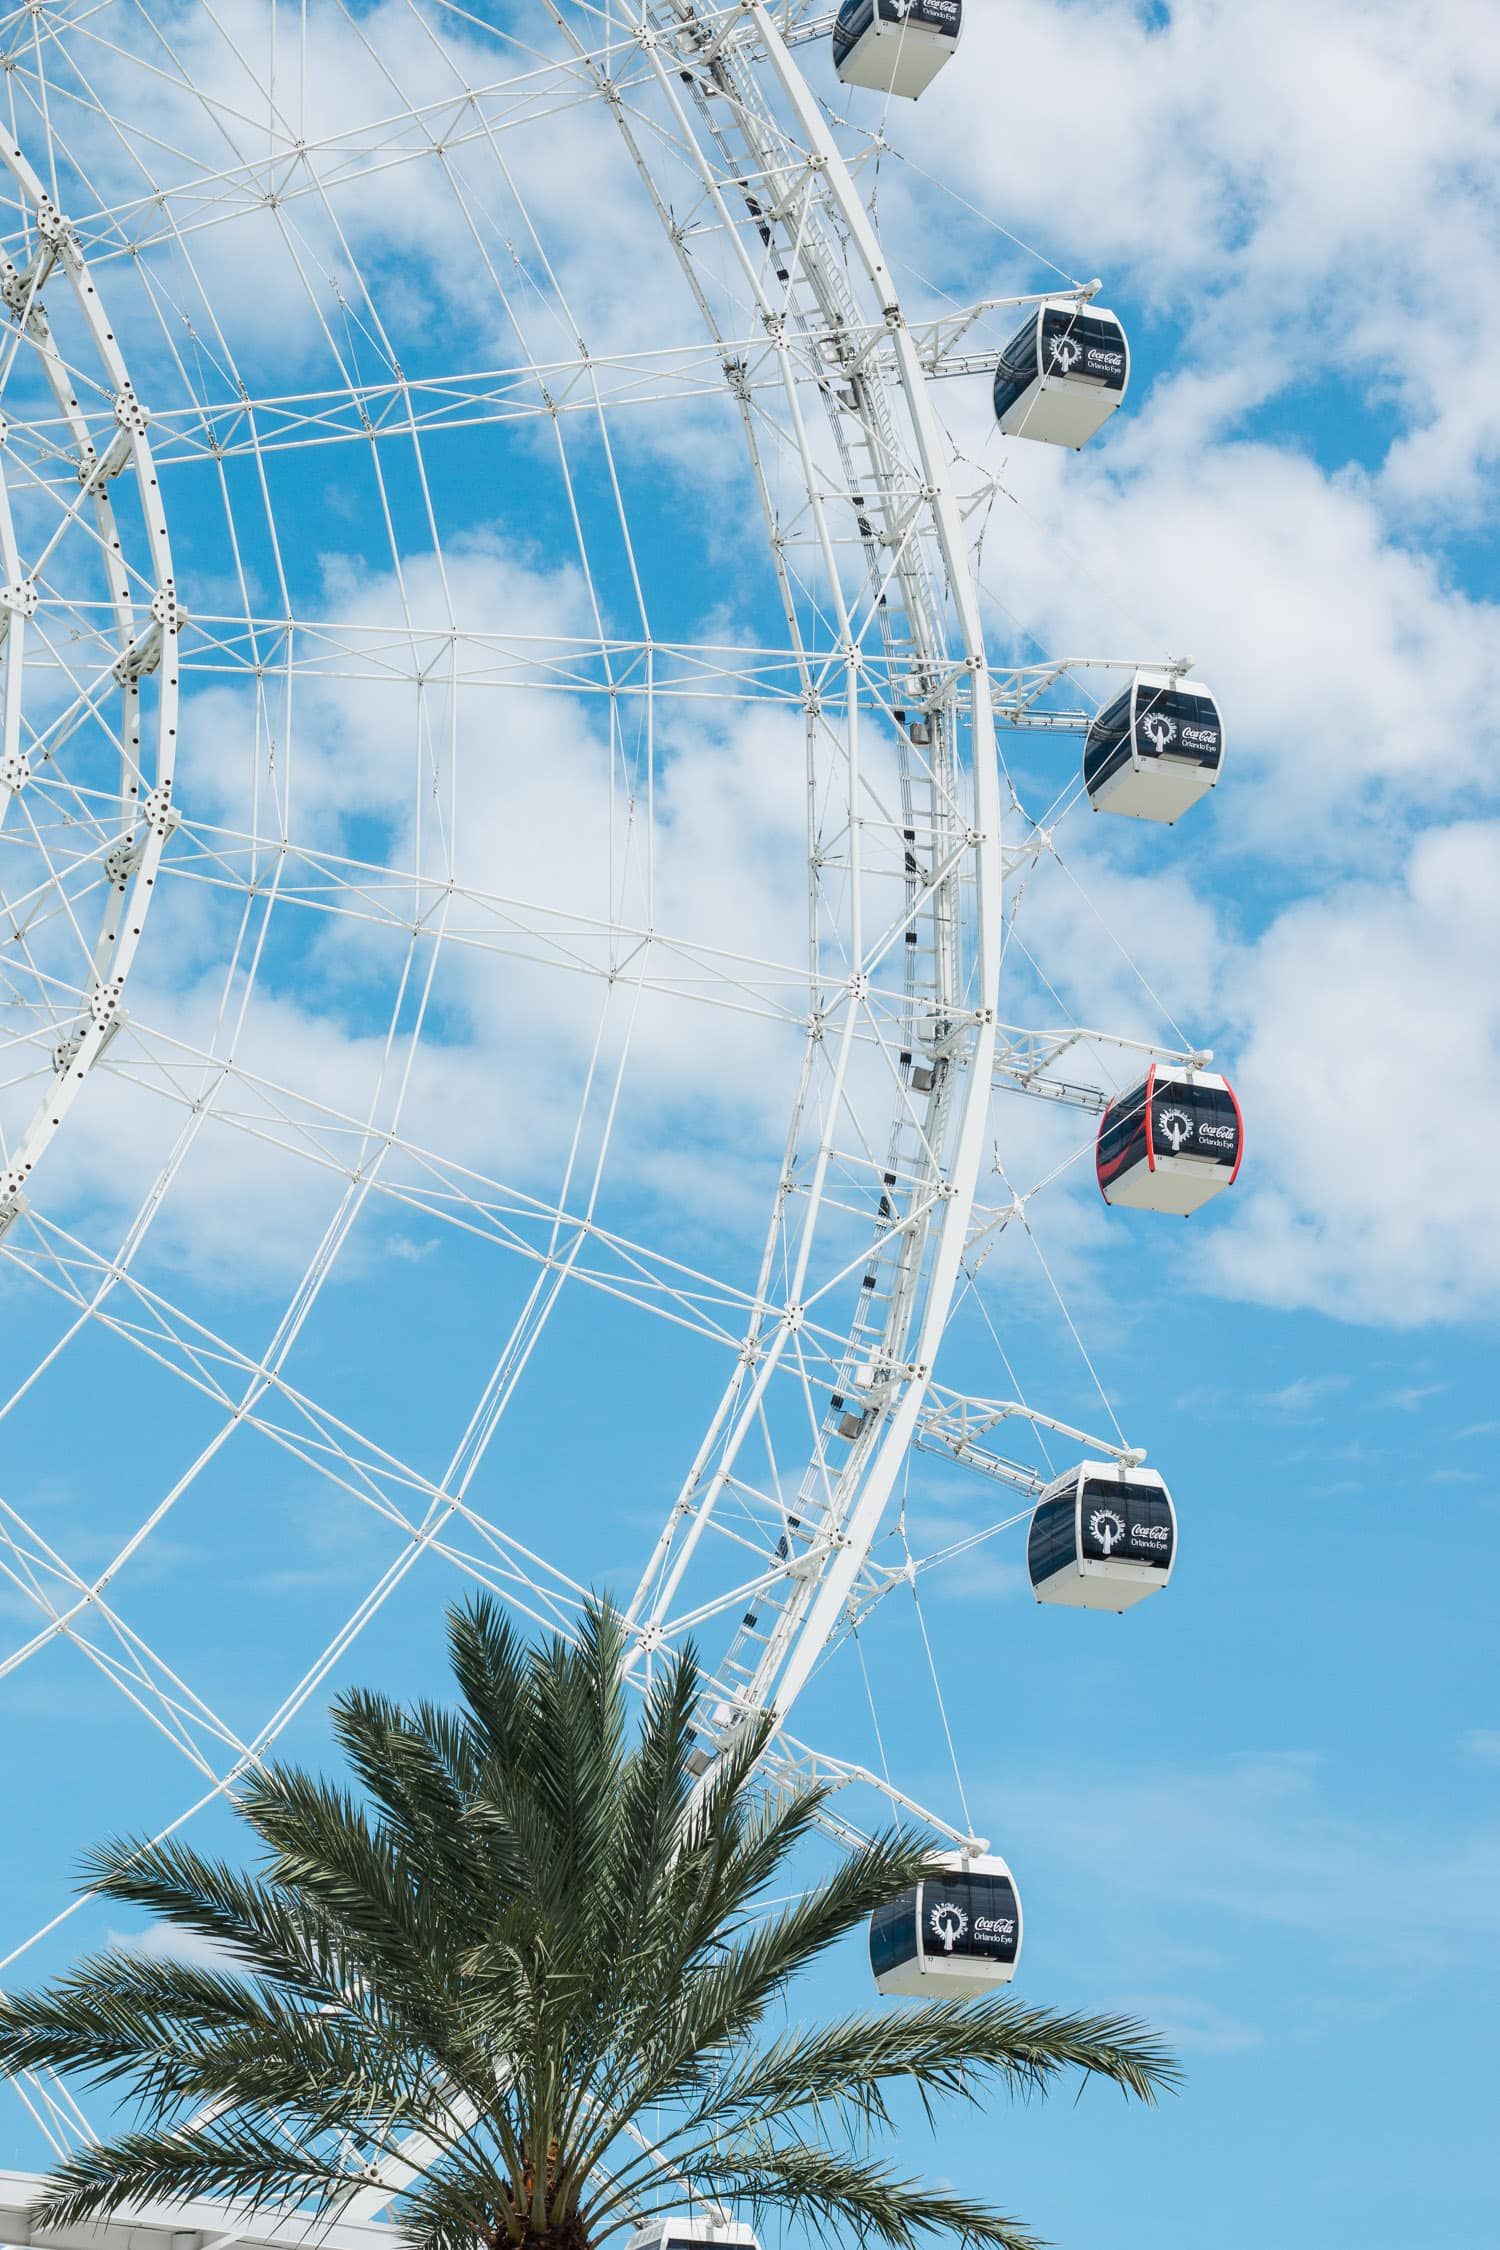 The Orlando Eye is a must-see during any trip to Orlando! Planning a trip to Orlando? I've rounded up the top 10 things to do in Orlando, Florida, that are guaranteed to make your trip a success. Whether you're moving to Orlando or just headed in on vacation, you will LOVE this list of fun activities in Orlando by Florida travel blogger Ashley Brooke Nicholas #CORTatHome sponsored by CORT Furniture | affordable travel tips, orlando vacation tips, vacation tips, florida travel, vacation goals